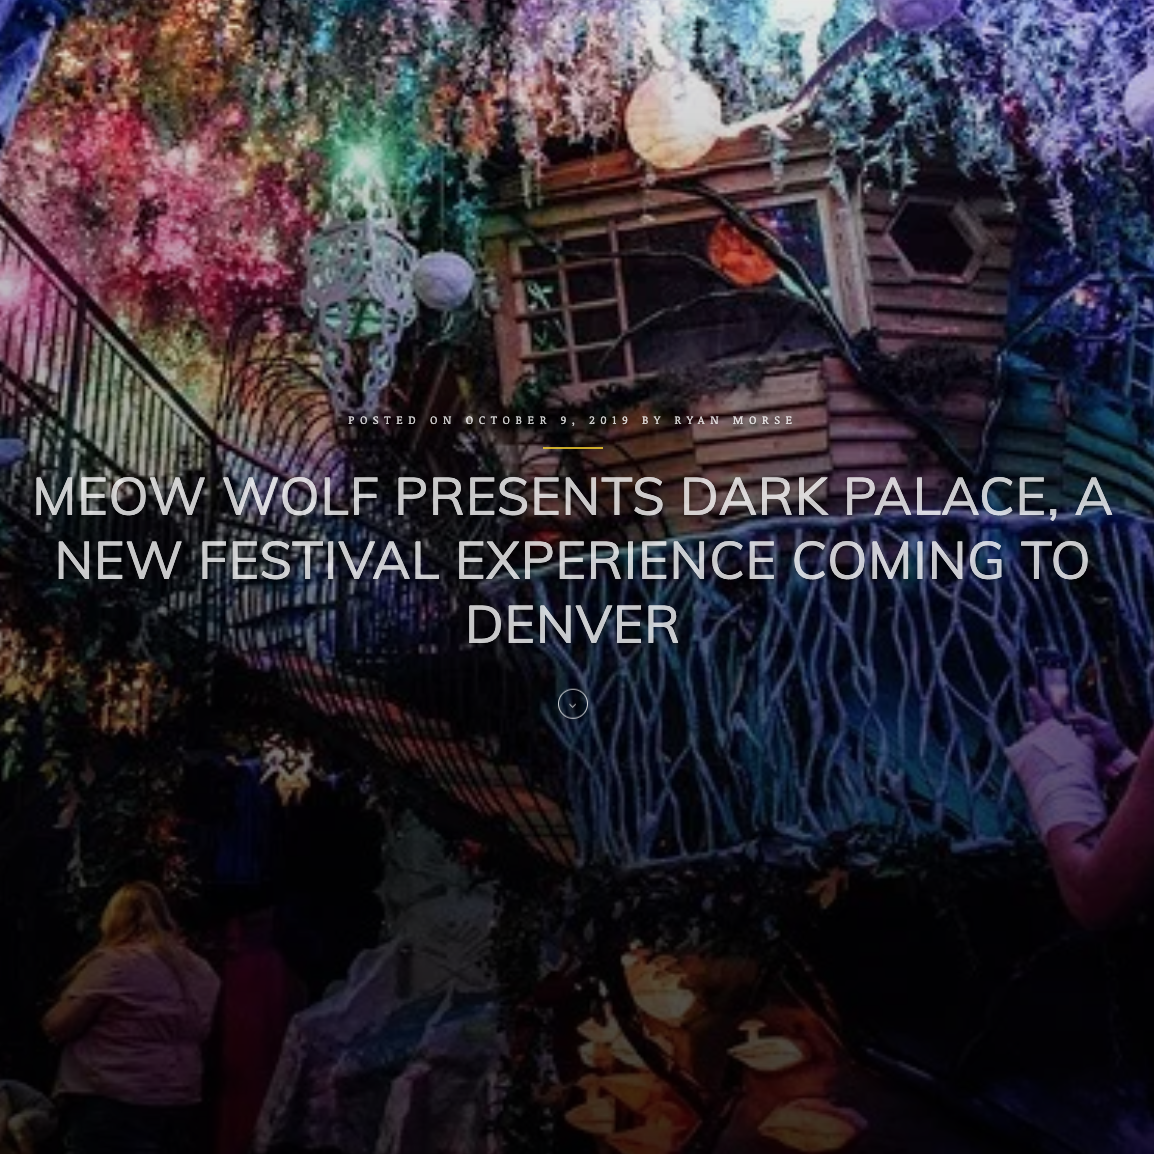 Meow Wolf presents dark palace. A new festival experience coming to Denver